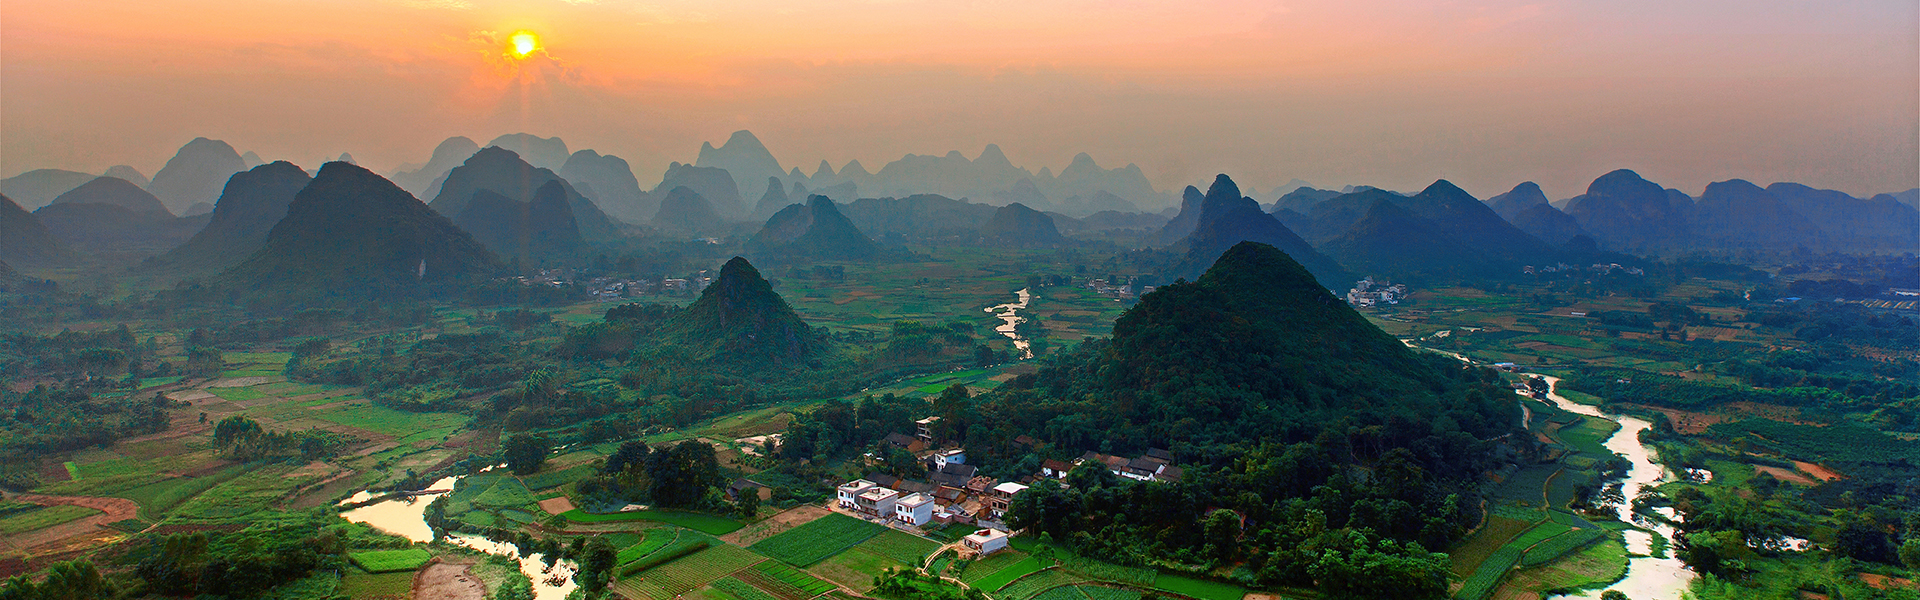 Discovering China's unique natural scenery with TCT